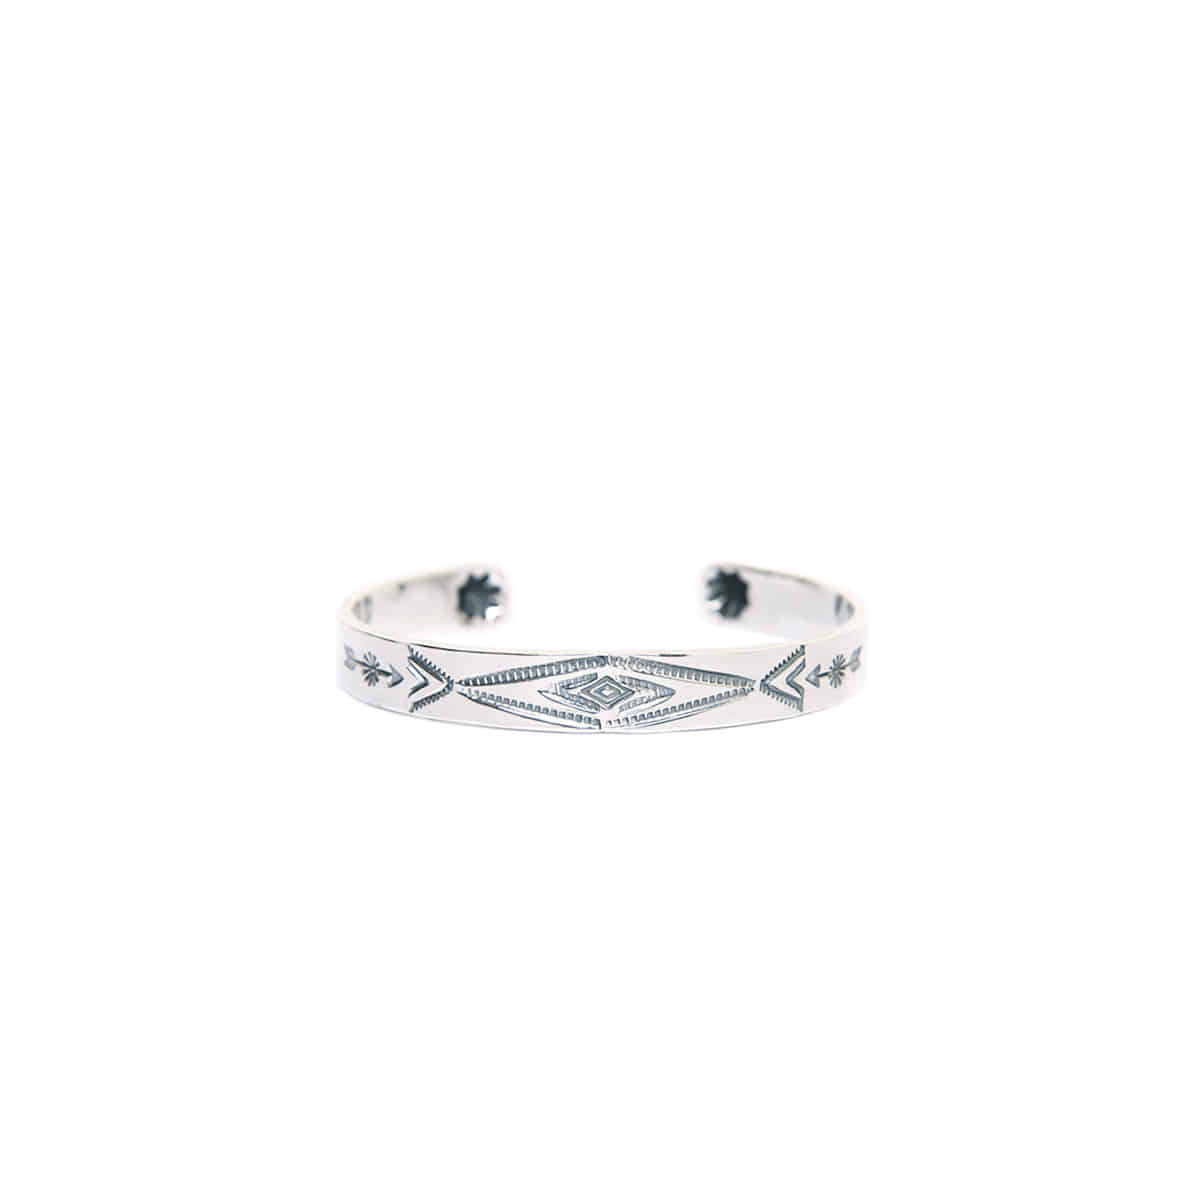 [NORTH WORKS] 900 SILVER CUFF BRACELET 'W-009'